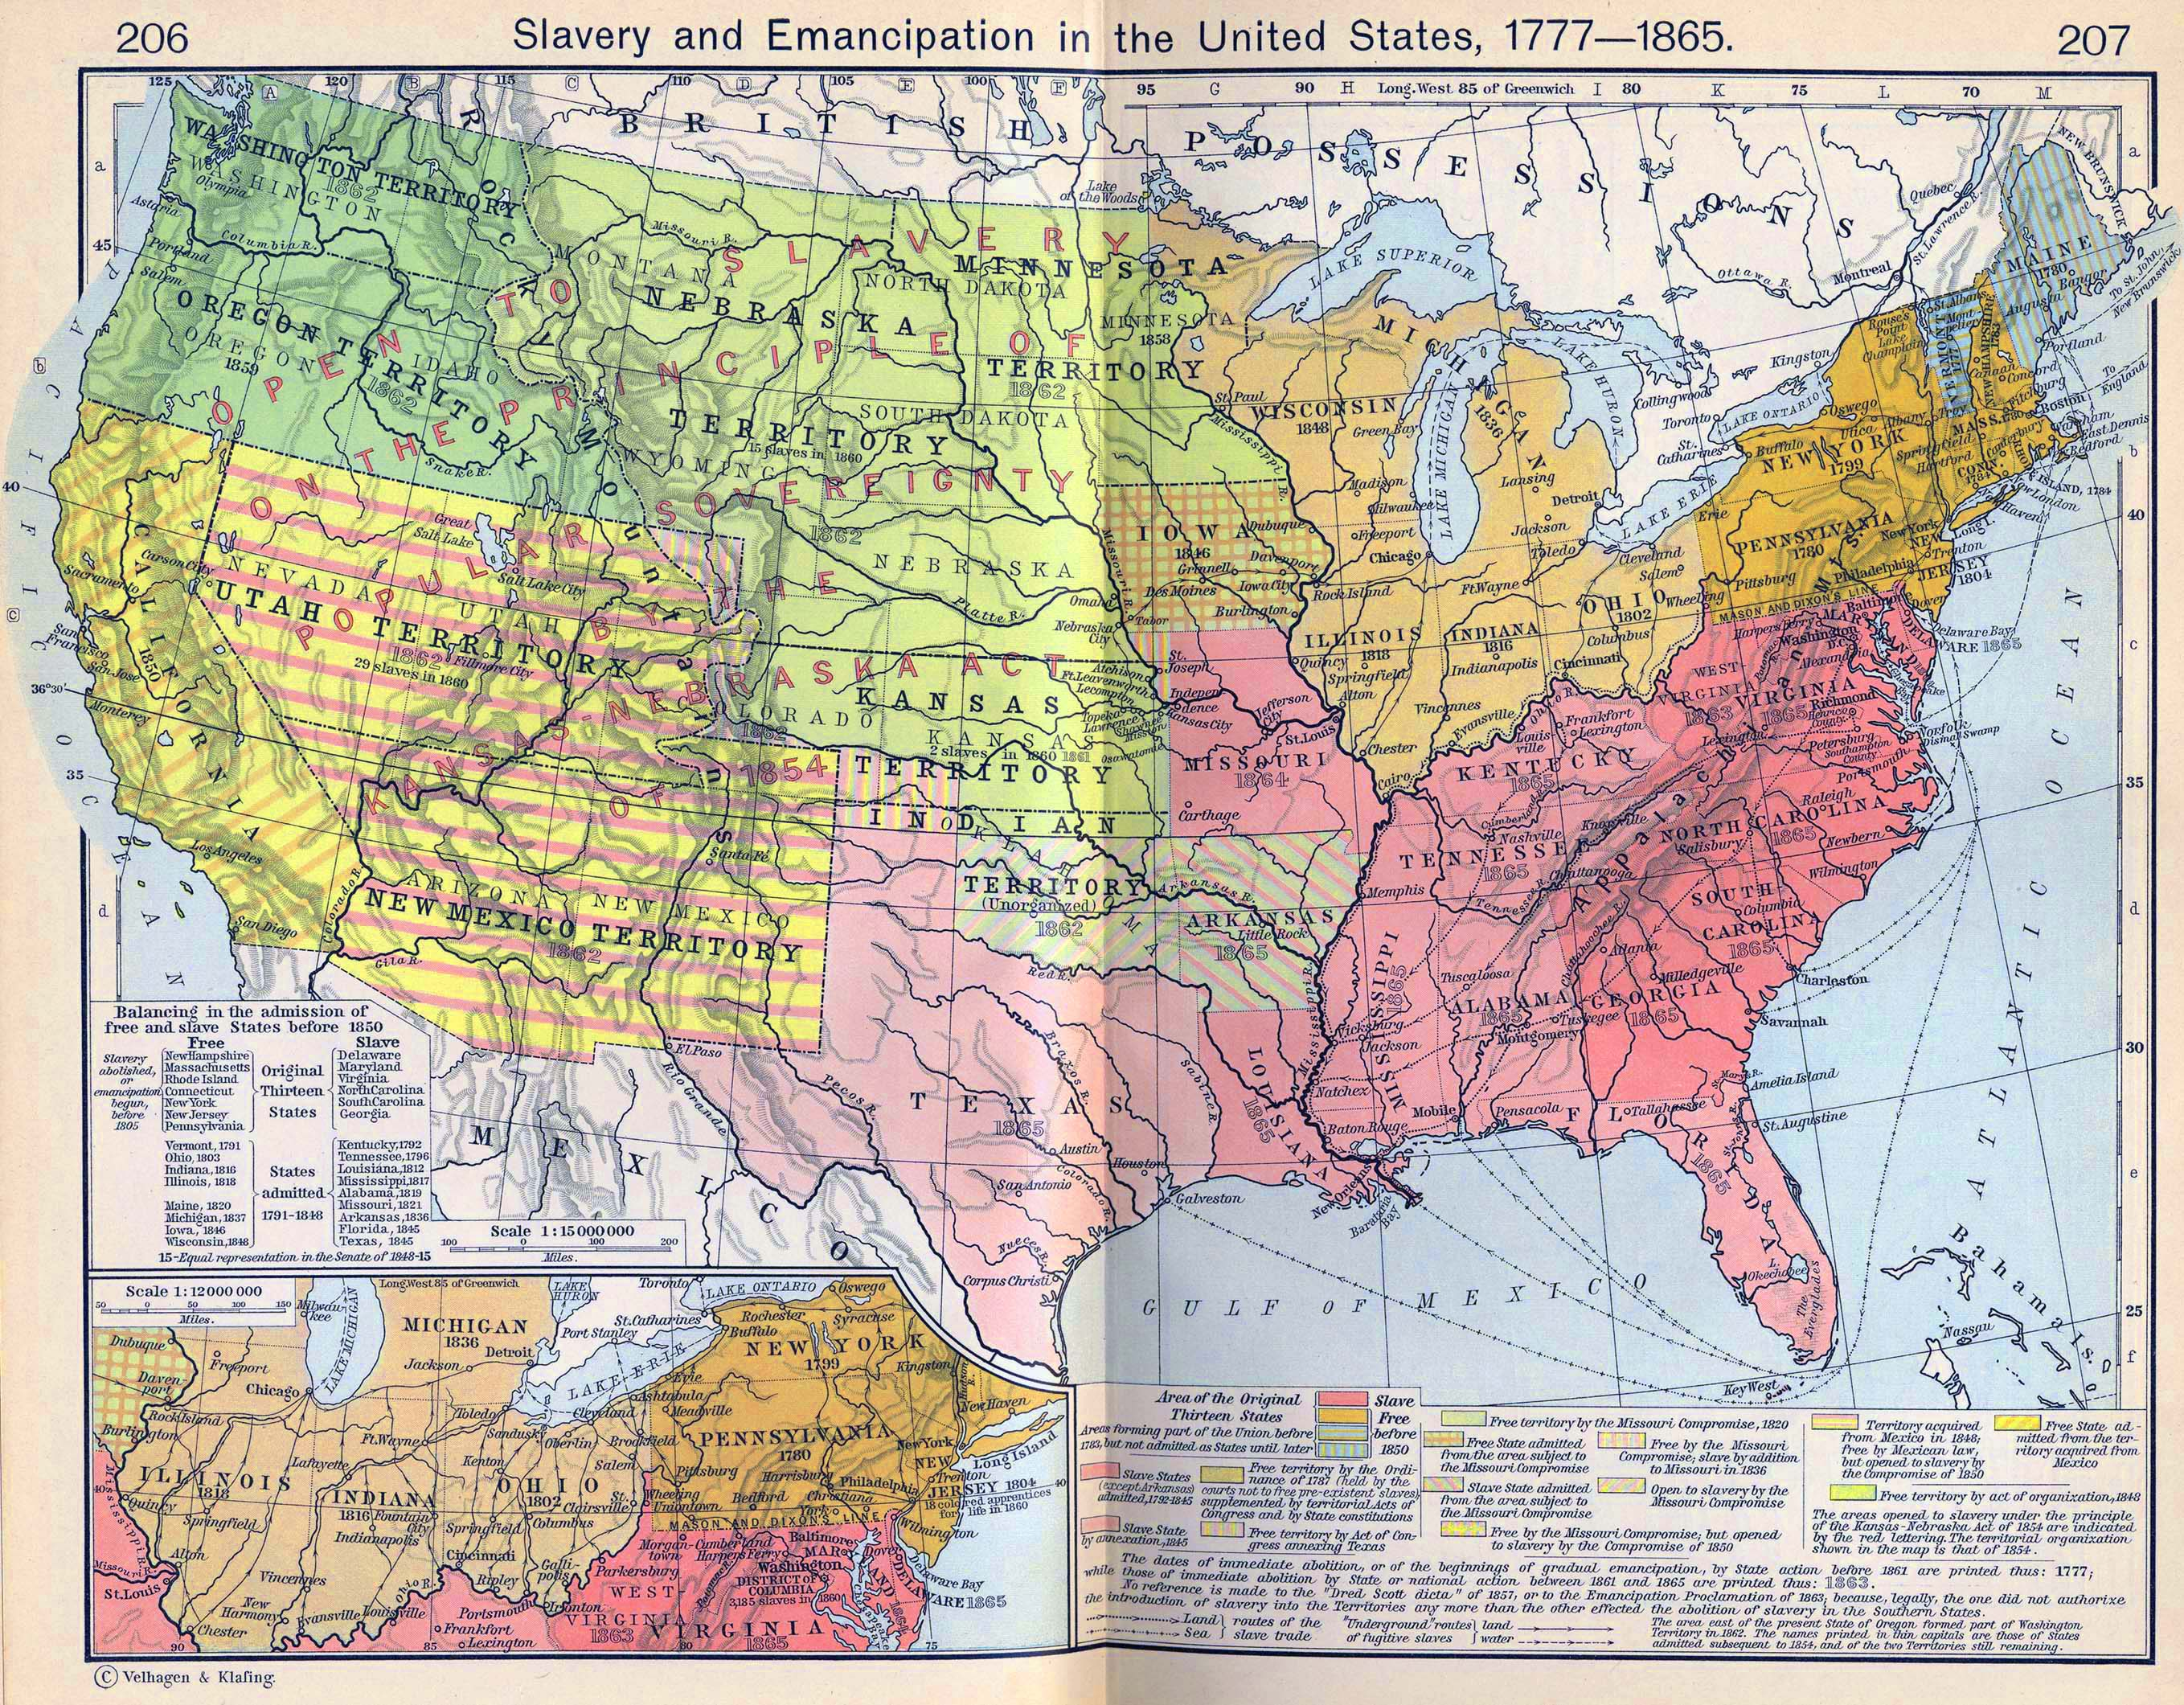 map of the united states 1777 1865 slavery and emantion